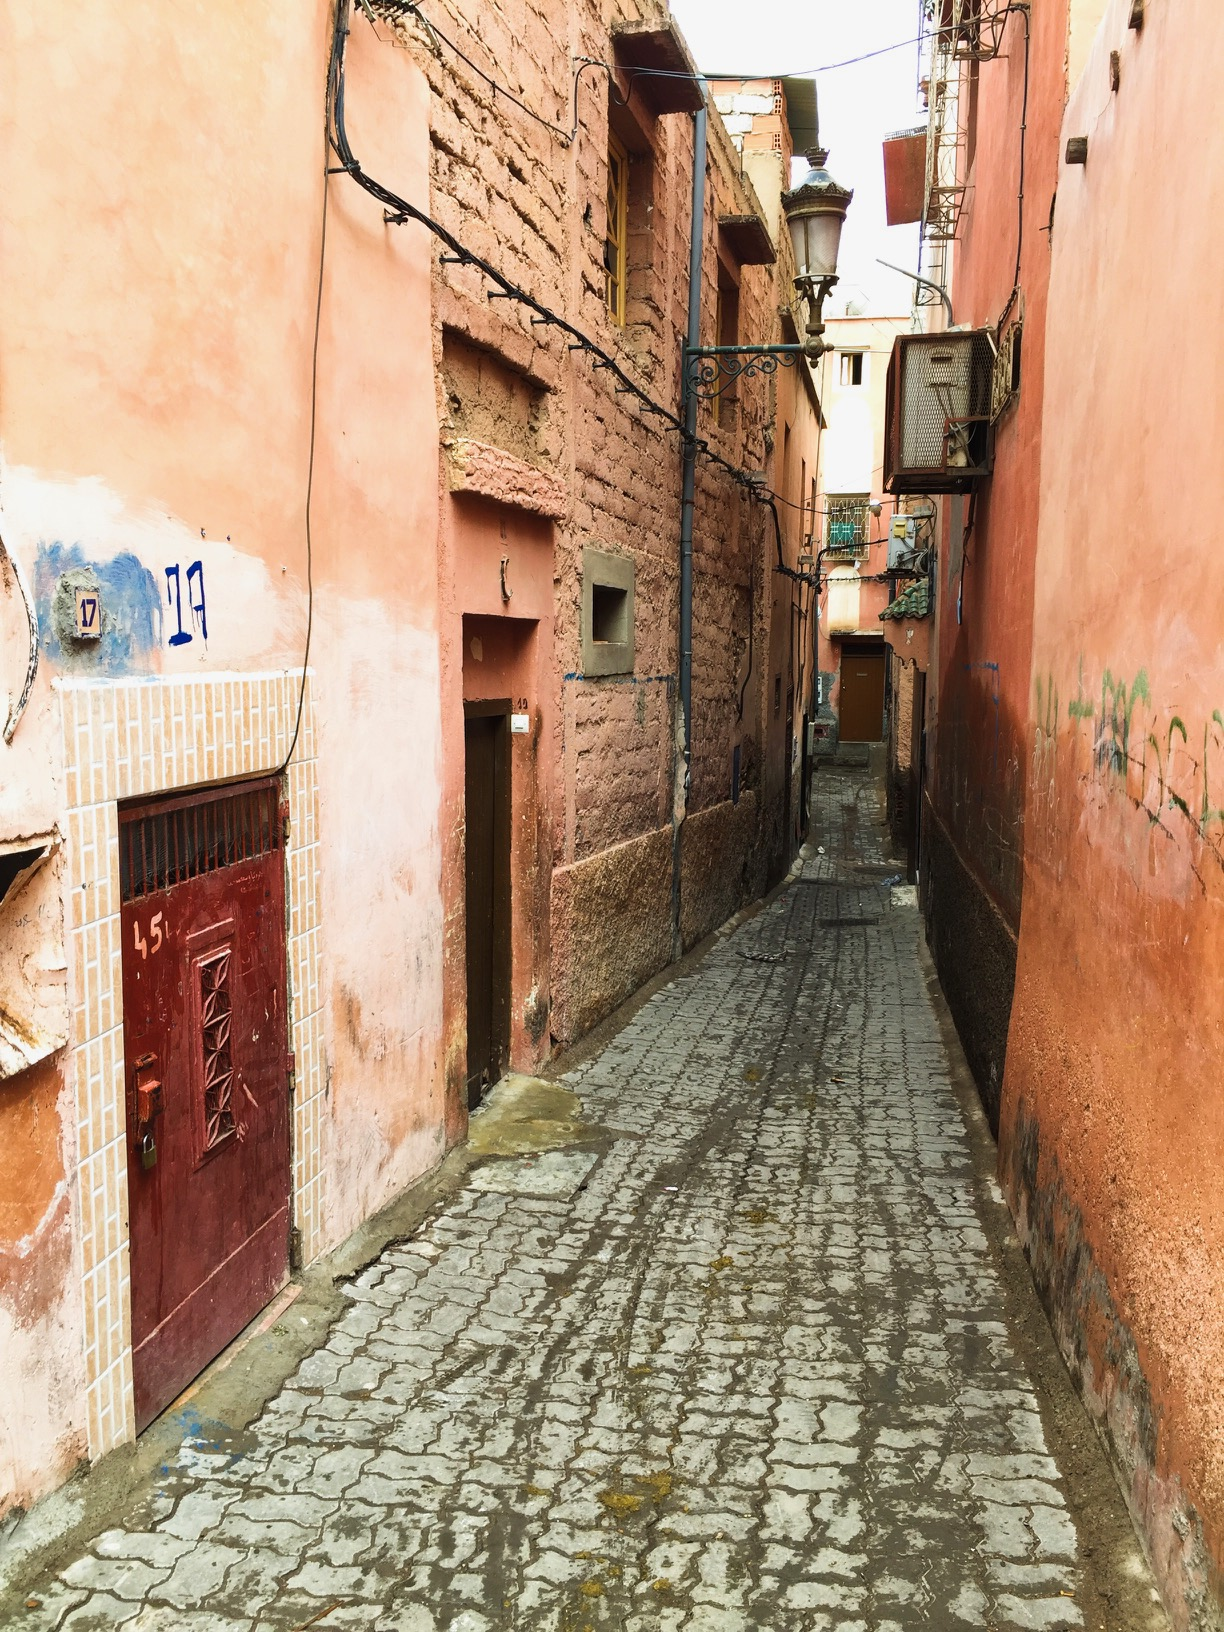 The streets of Marrakech are perfect for exploring. Passion and Peace guide to the souks of Marrakech #travel #travelguide #Morocco